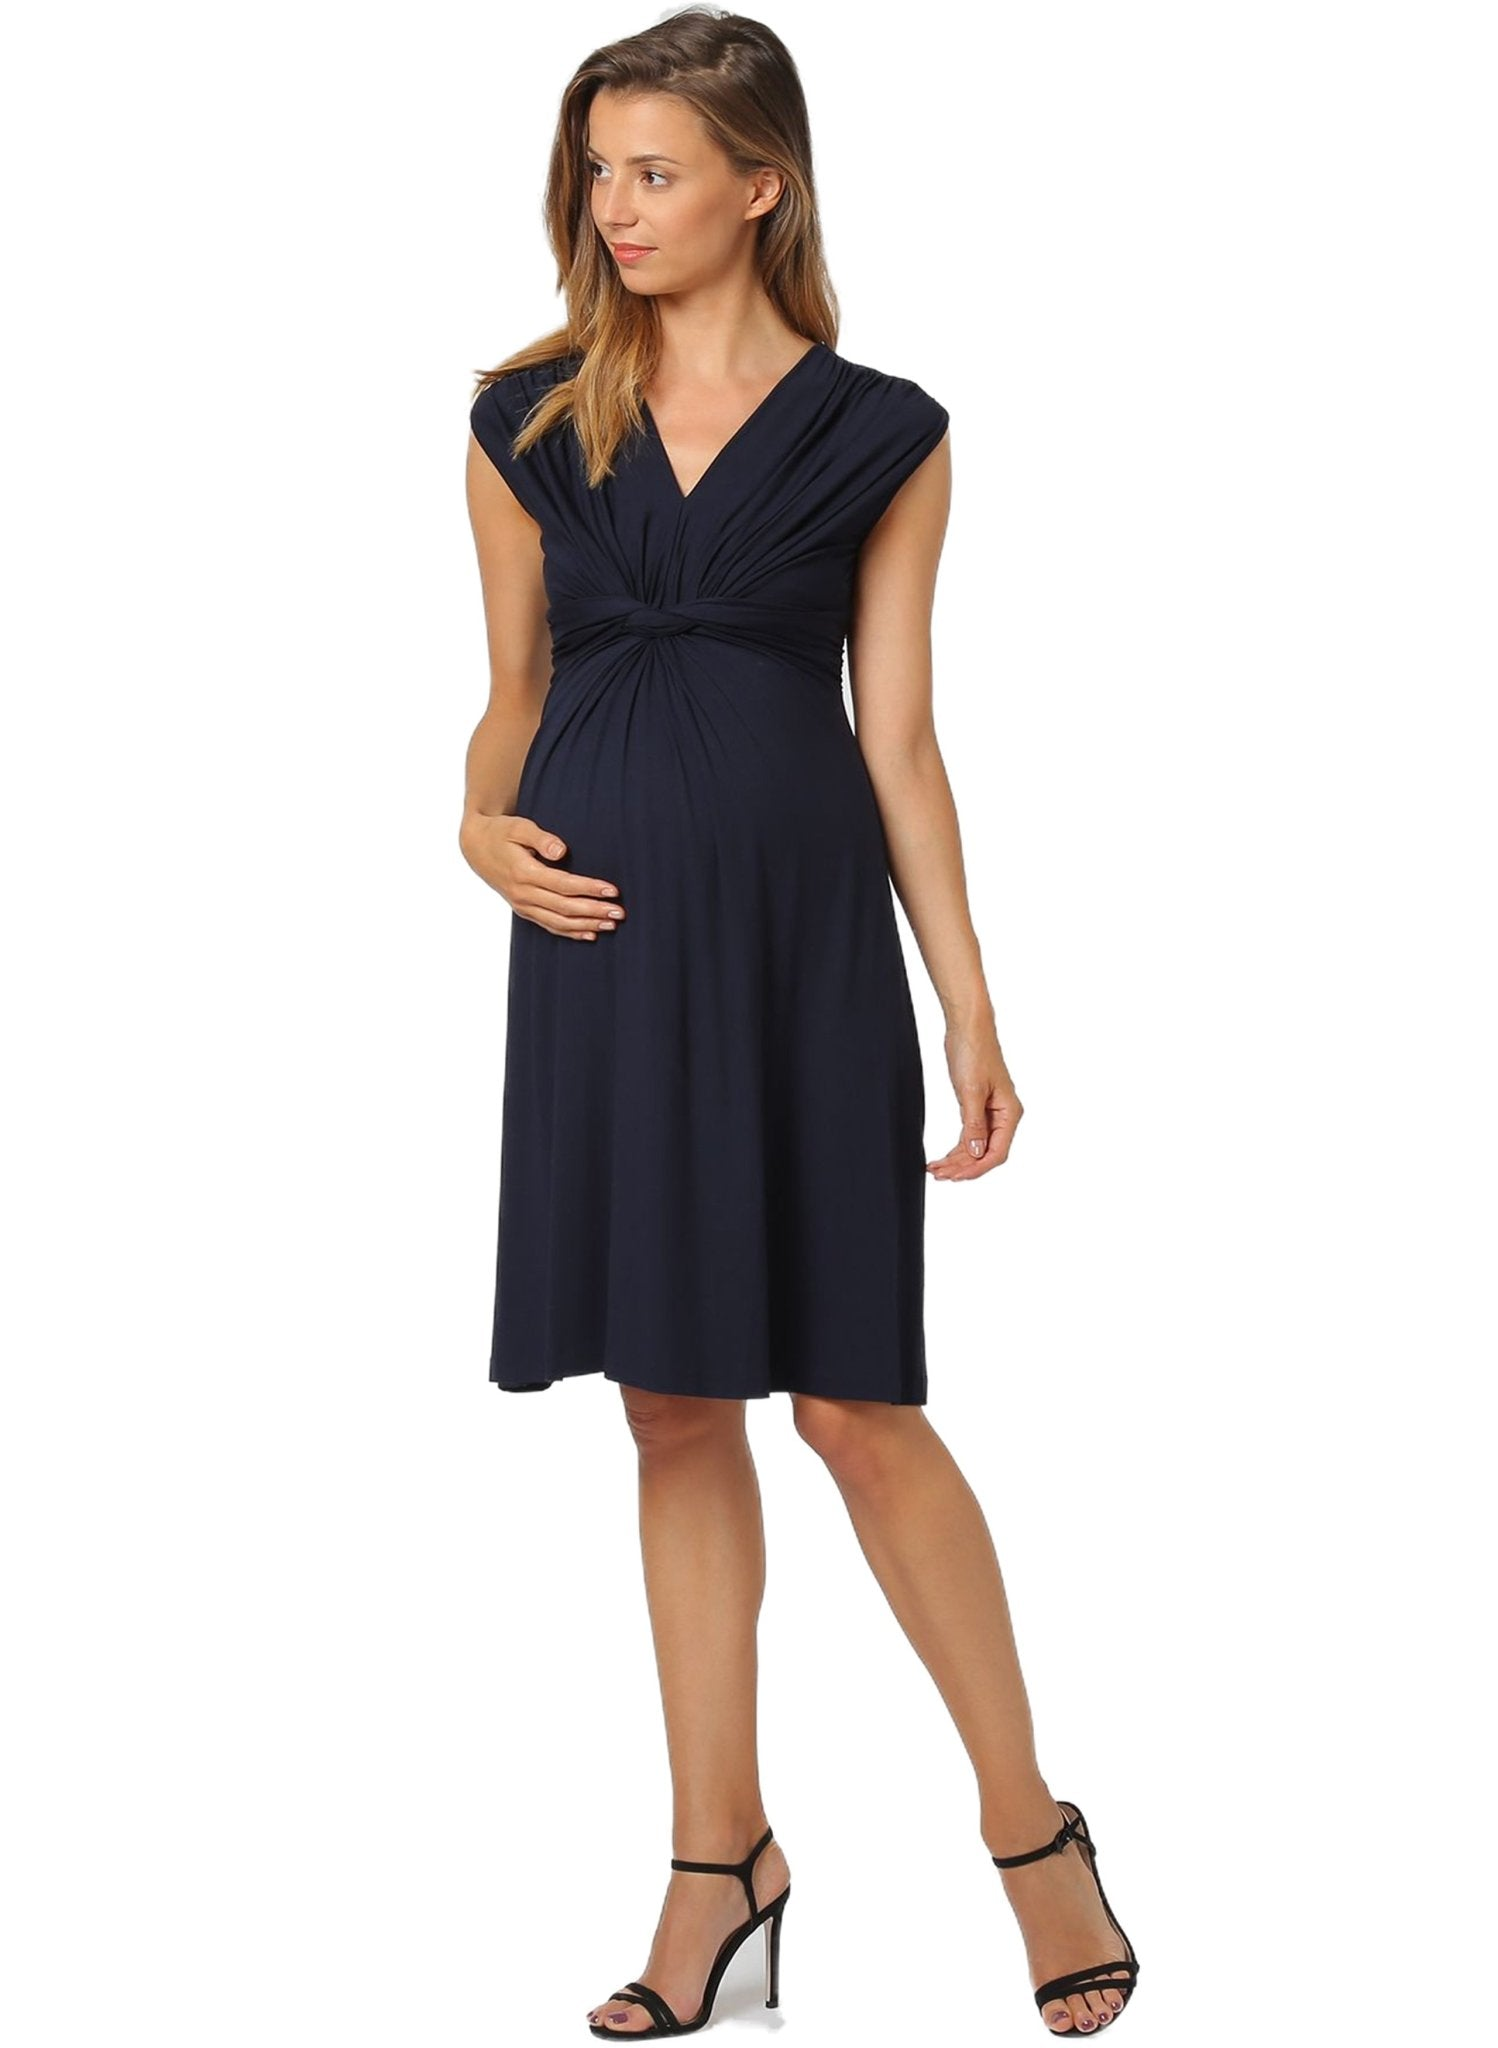 Papaver Maternity Dress - Dark Navy - Mums and Bumps